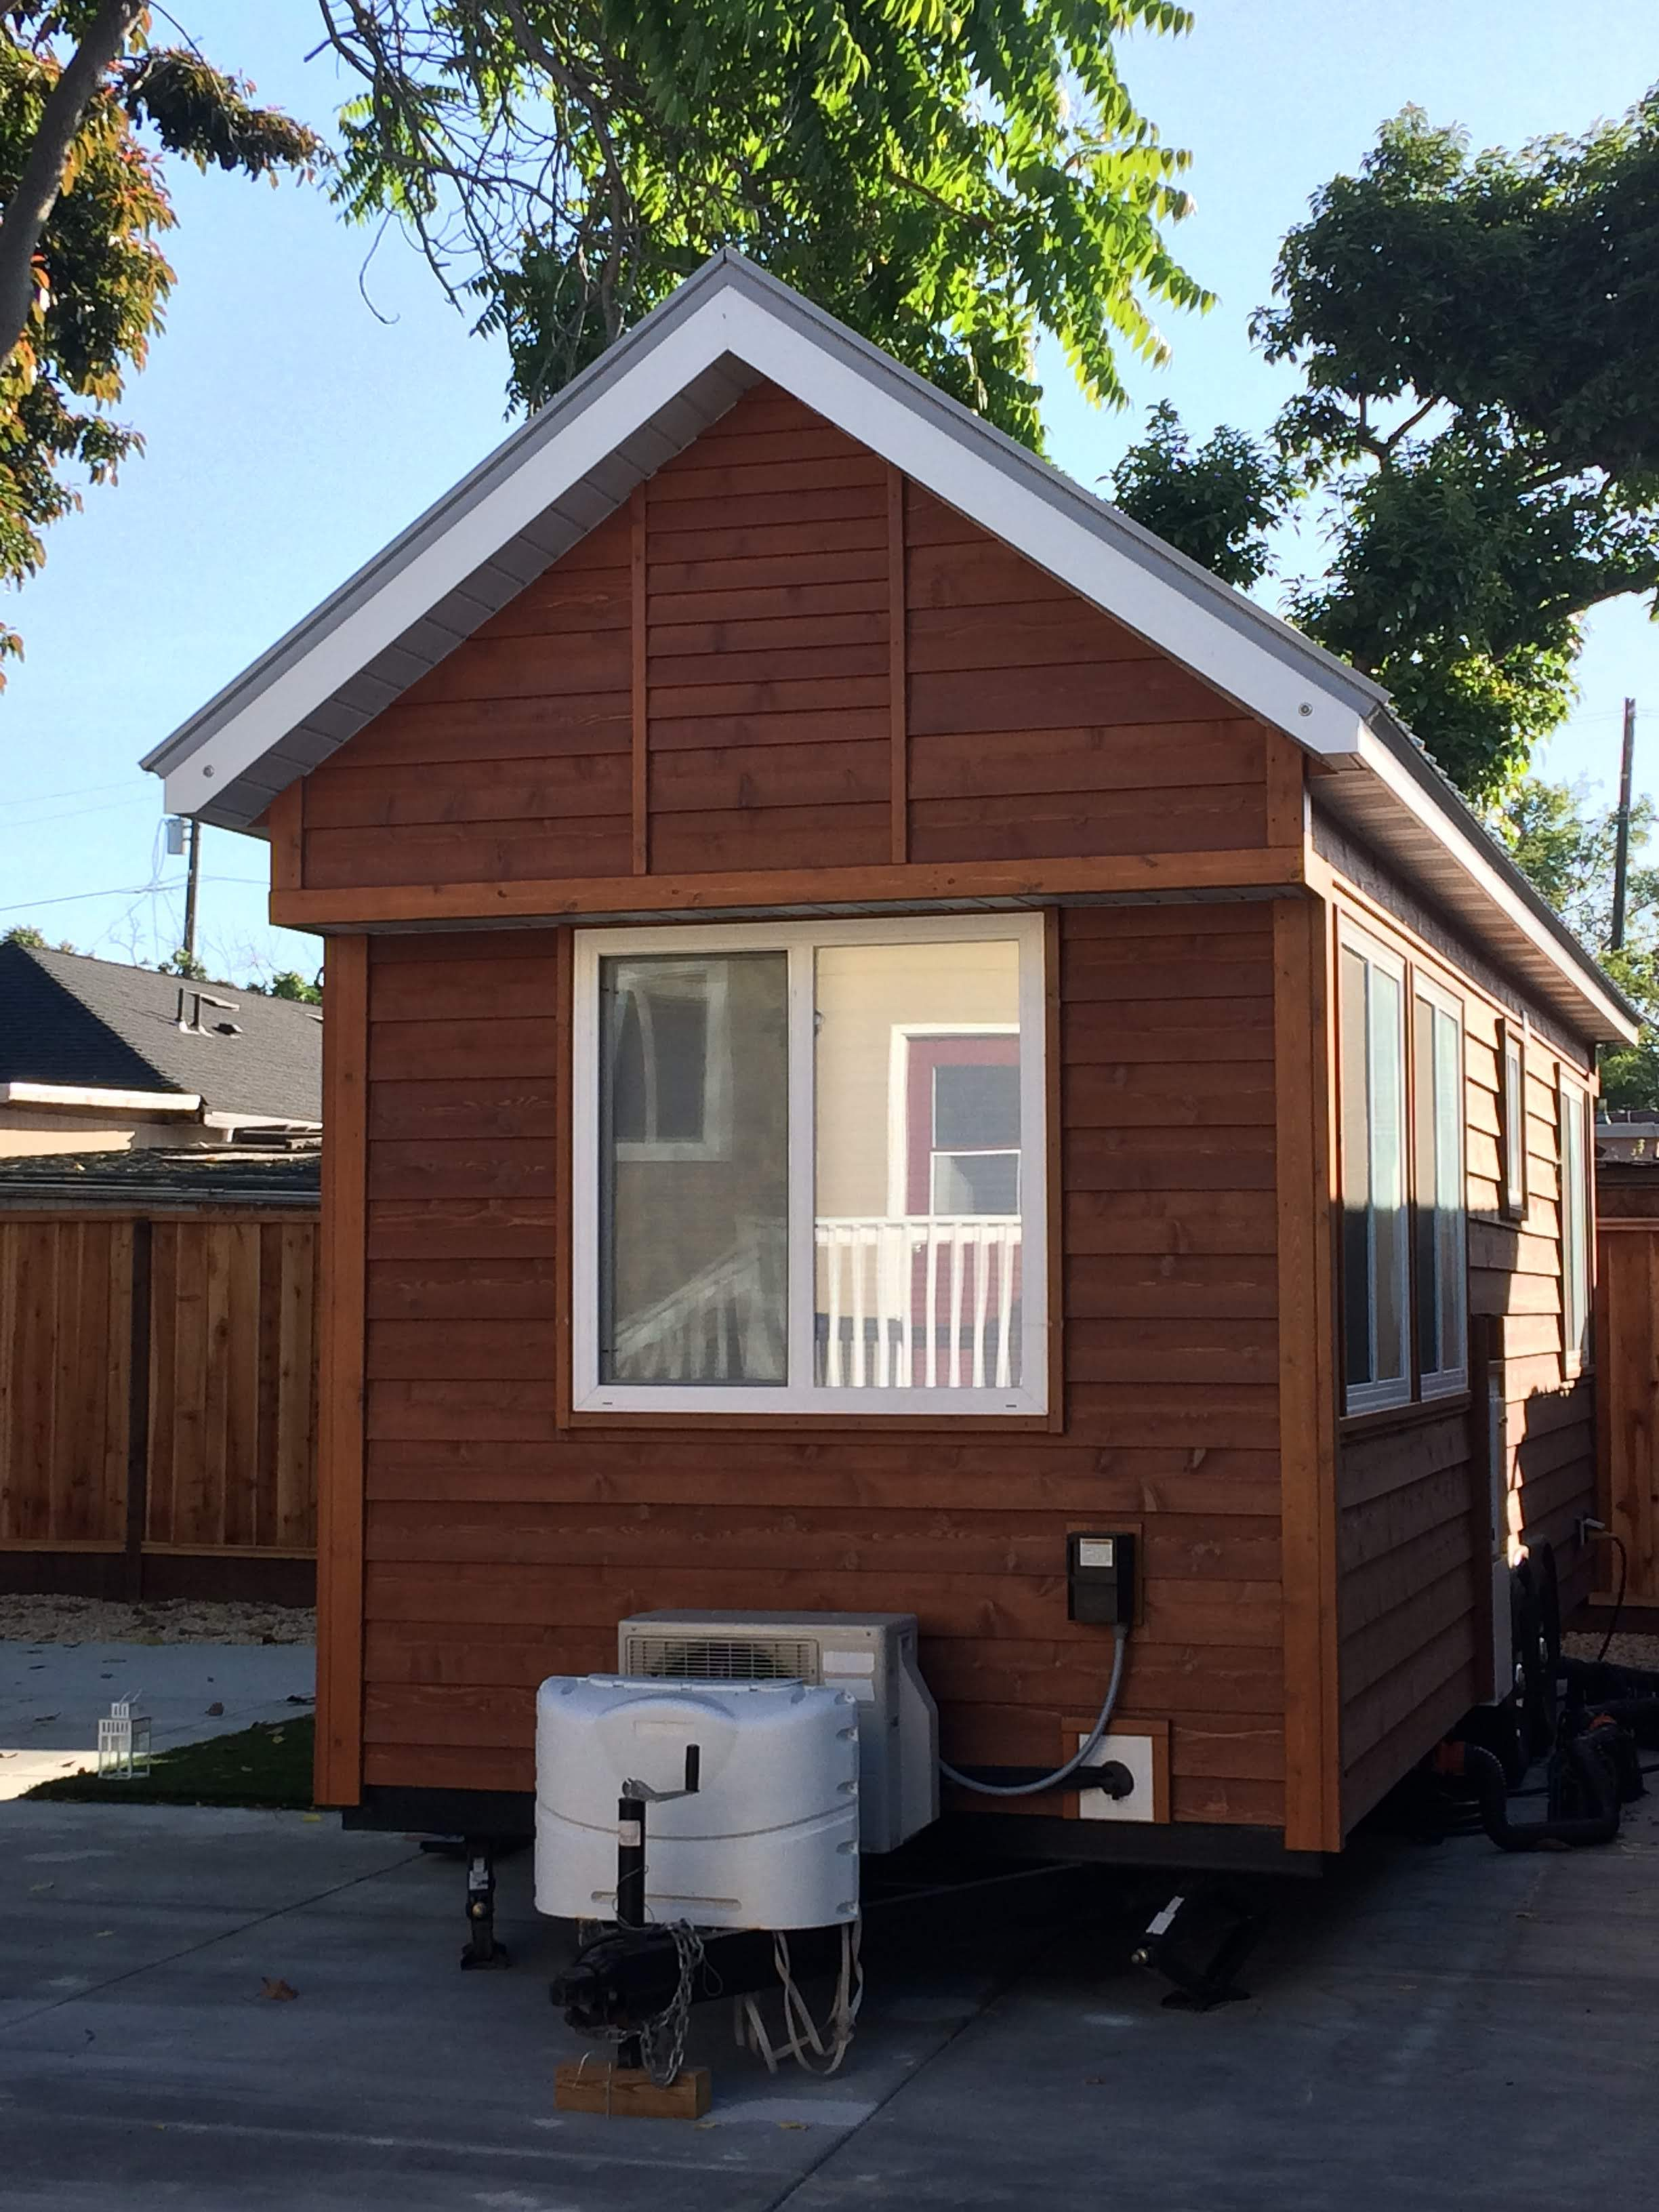 tiny travel chick travel experience tiny house front view